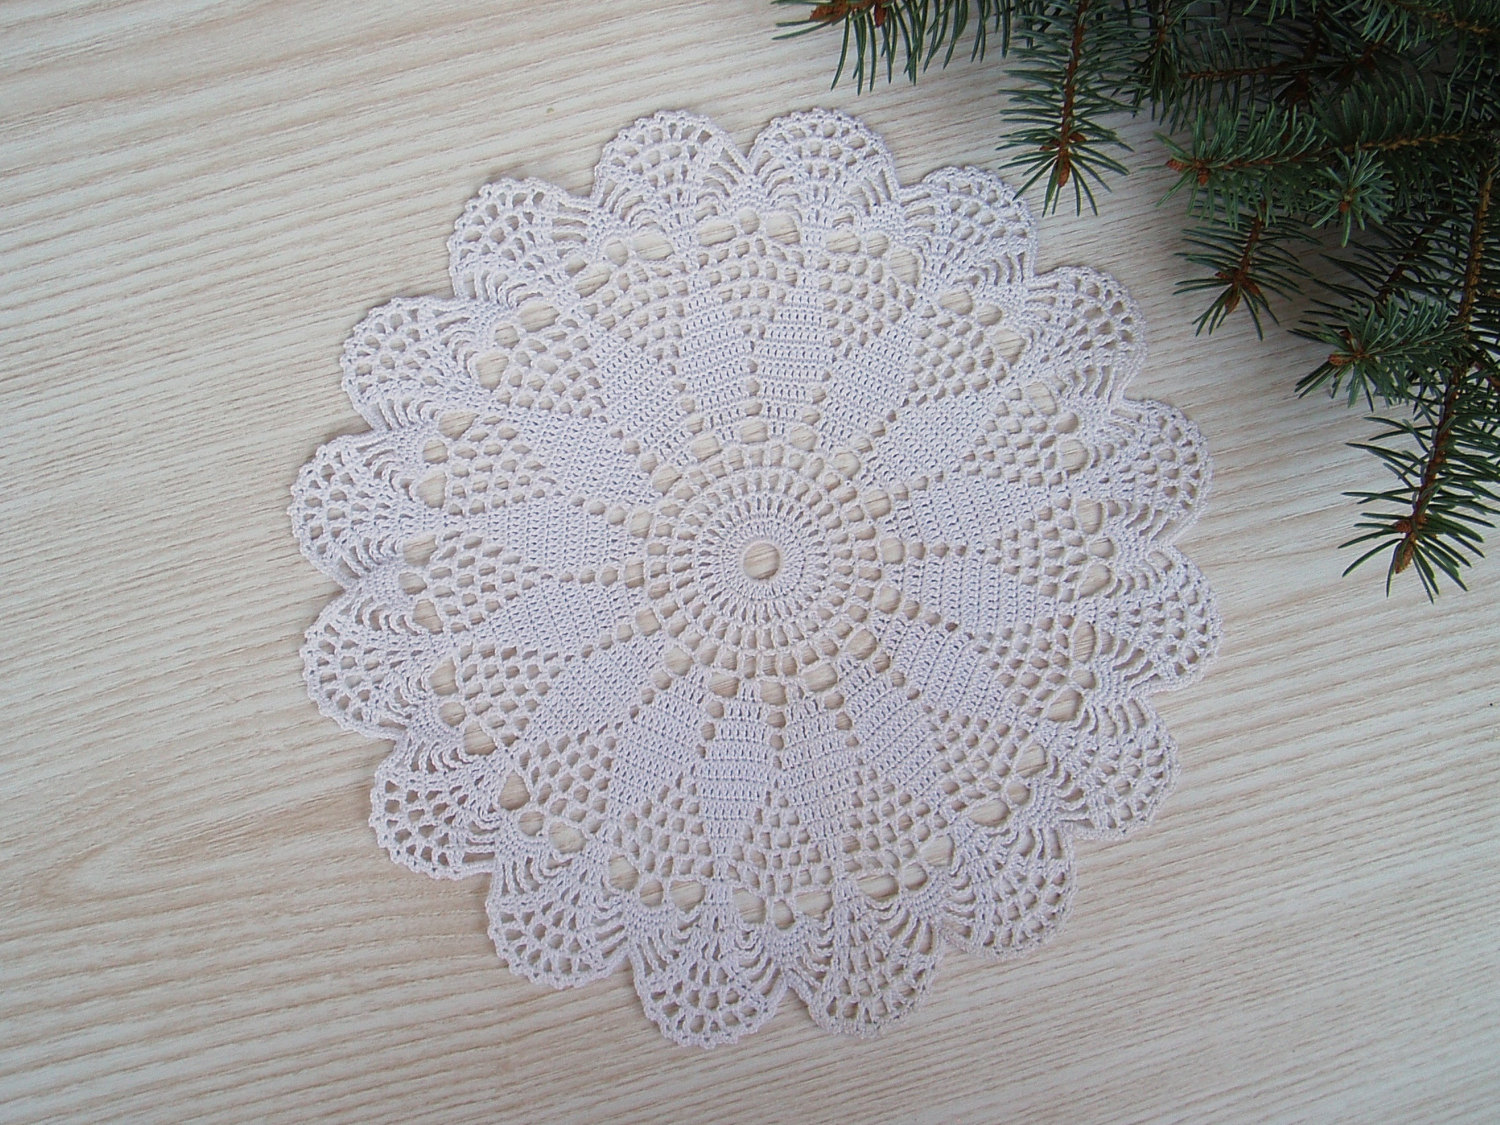 lace crochet white round doily crochet centerpiece lace crochet table decor crochet white. Black Bedroom Furniture Sets. Home Design Ideas